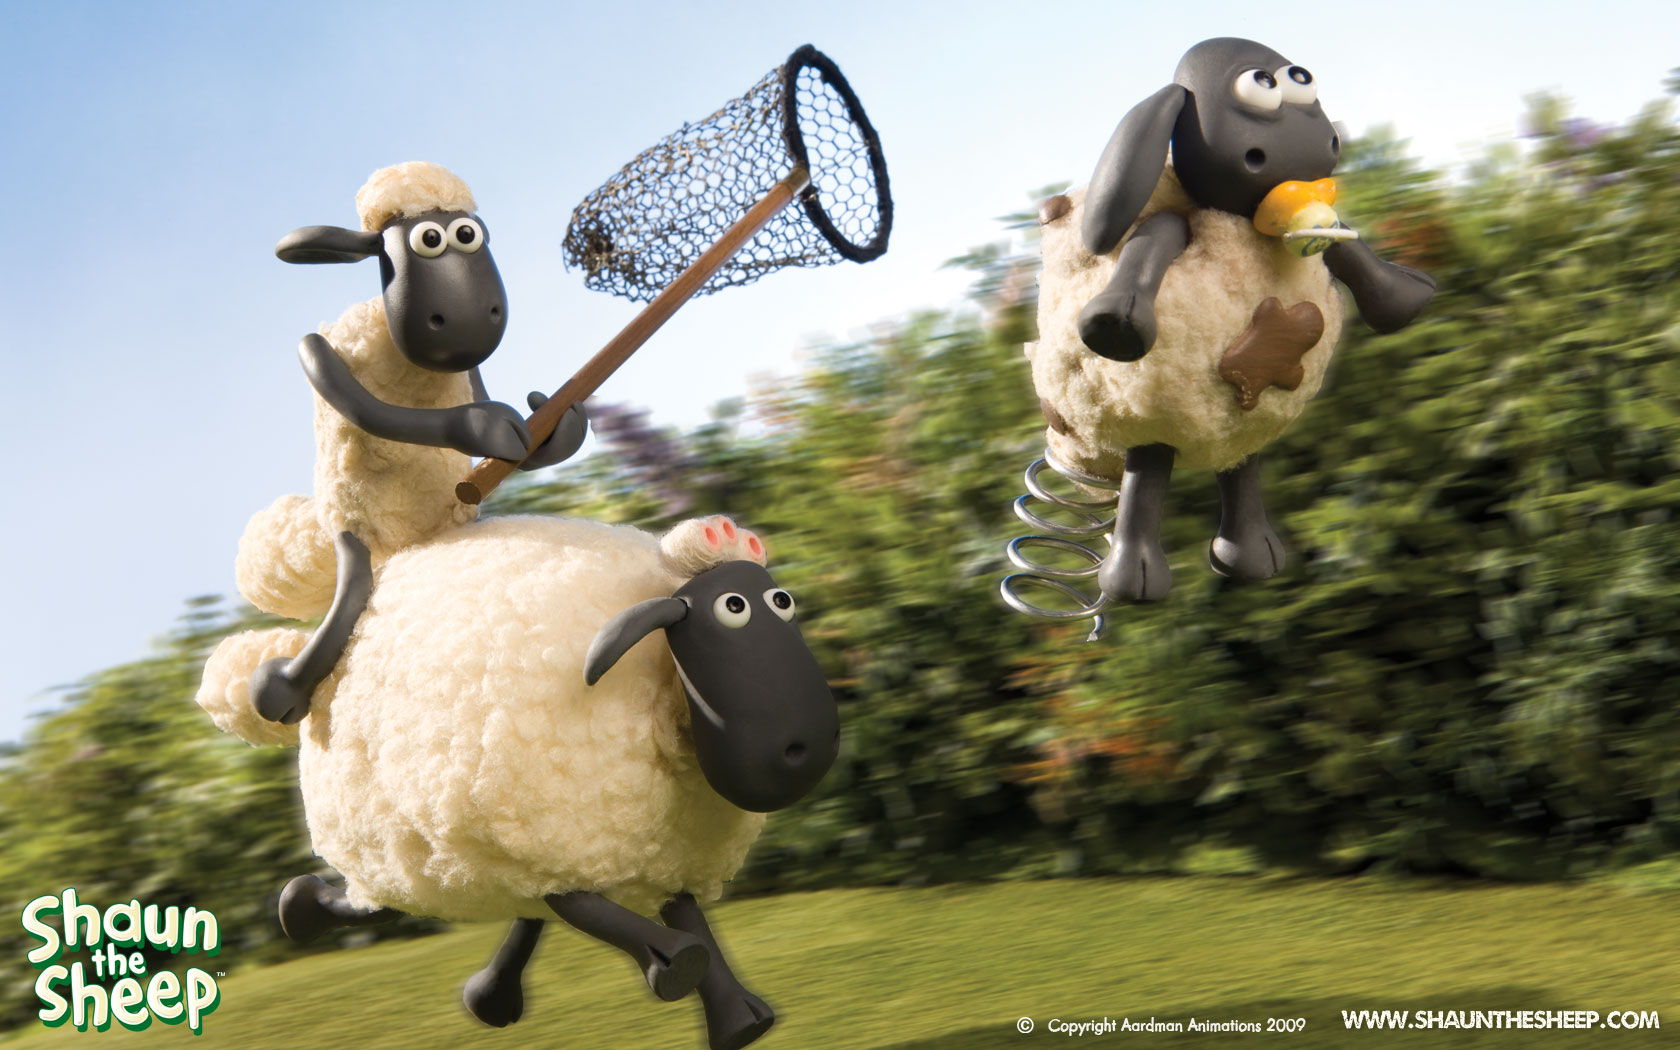 Shaun The Sheep Images HD Wallpaper And Background Photos